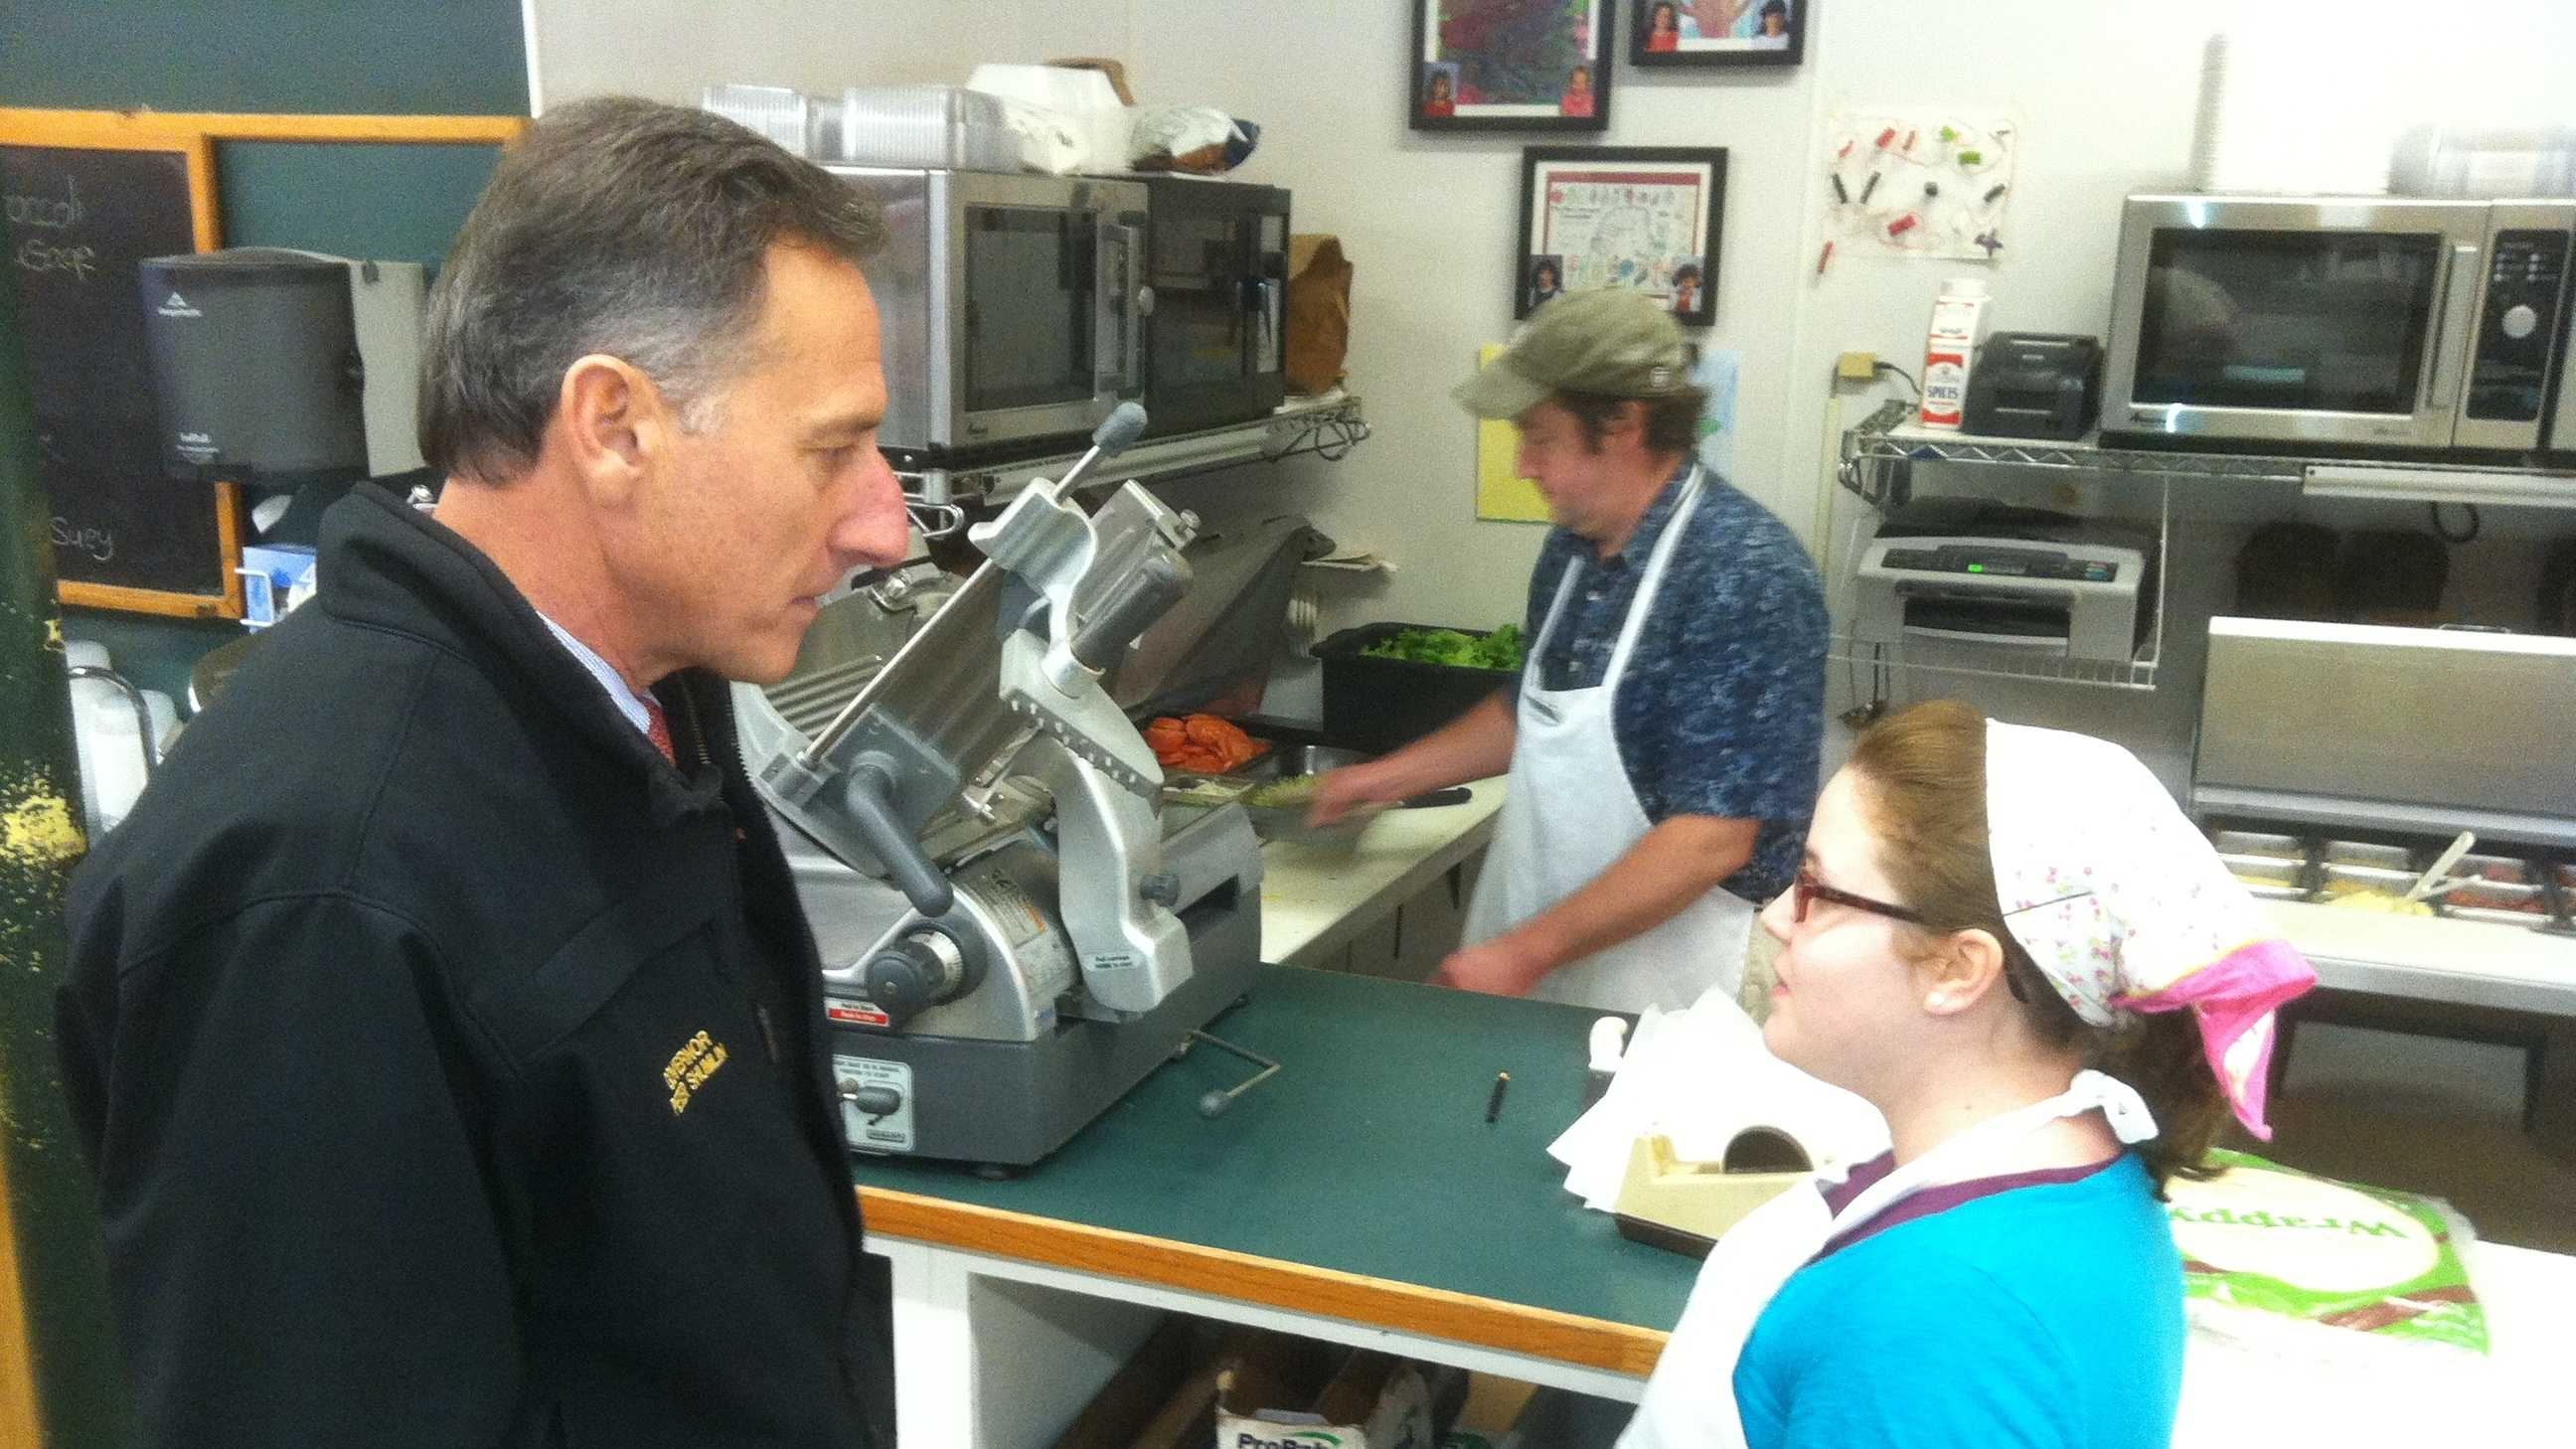 Gov. Peter Shumlin introduced himself to kitchen staff at Martone's Market in Essex Junction Monday.